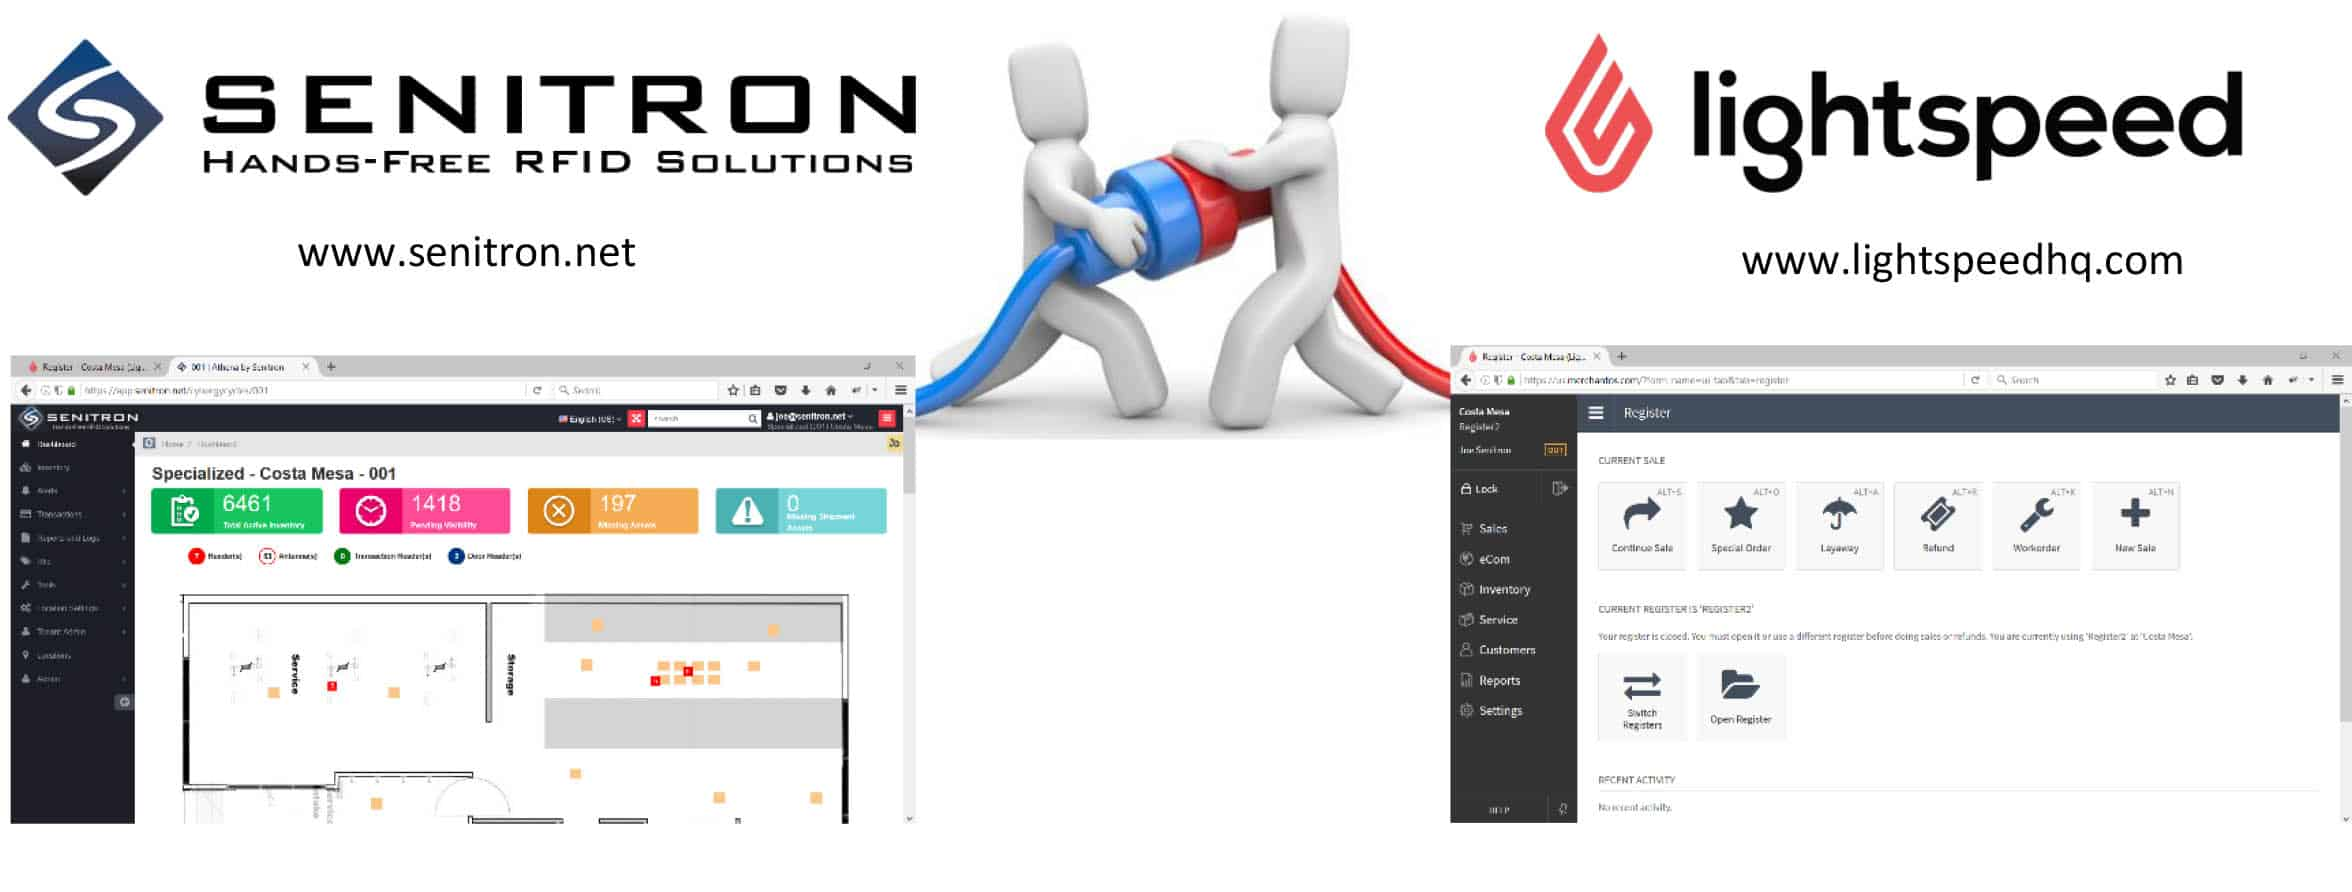 LightSpeed POS integration with Senitron Solutions